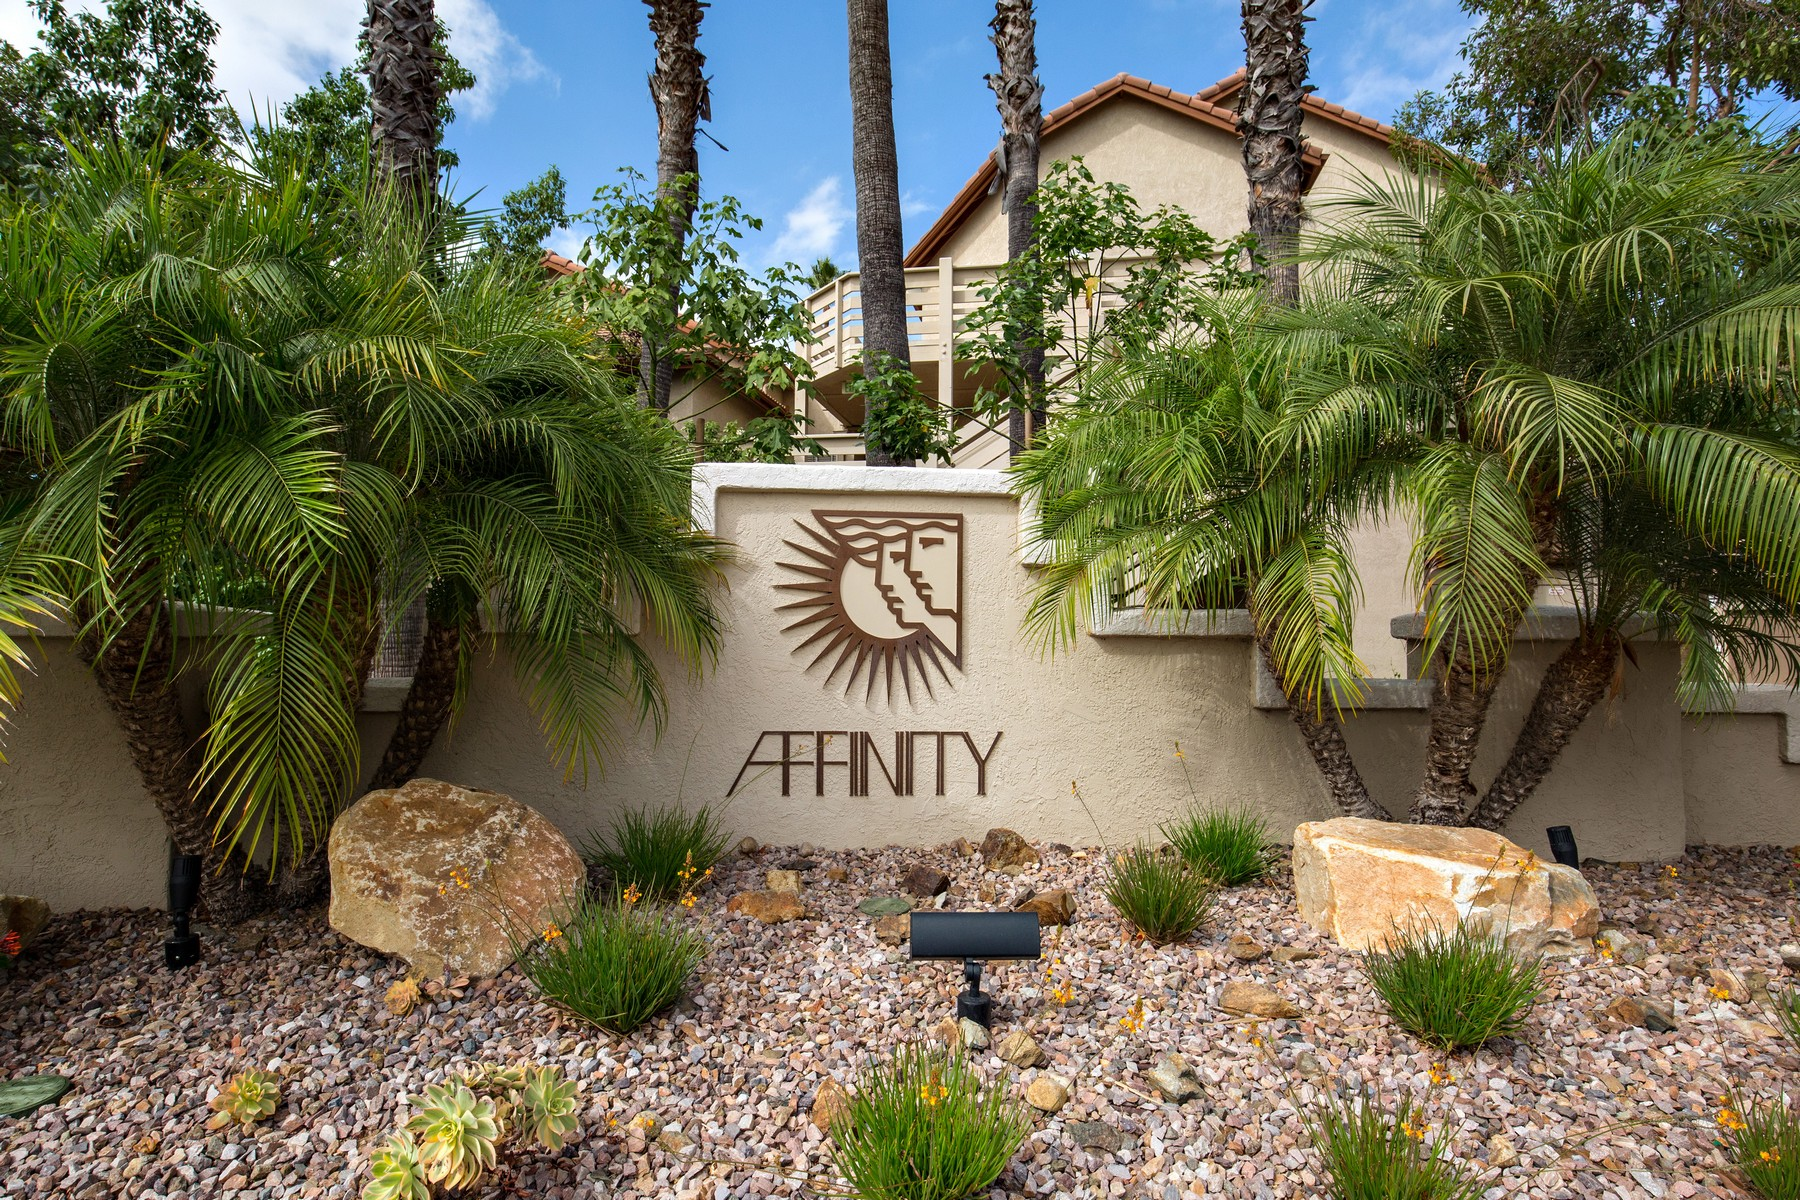 Additional photo for property listing at 11325  Affinity Court 135 11325  Affinity Court 157 San Diego, California 92131 United States